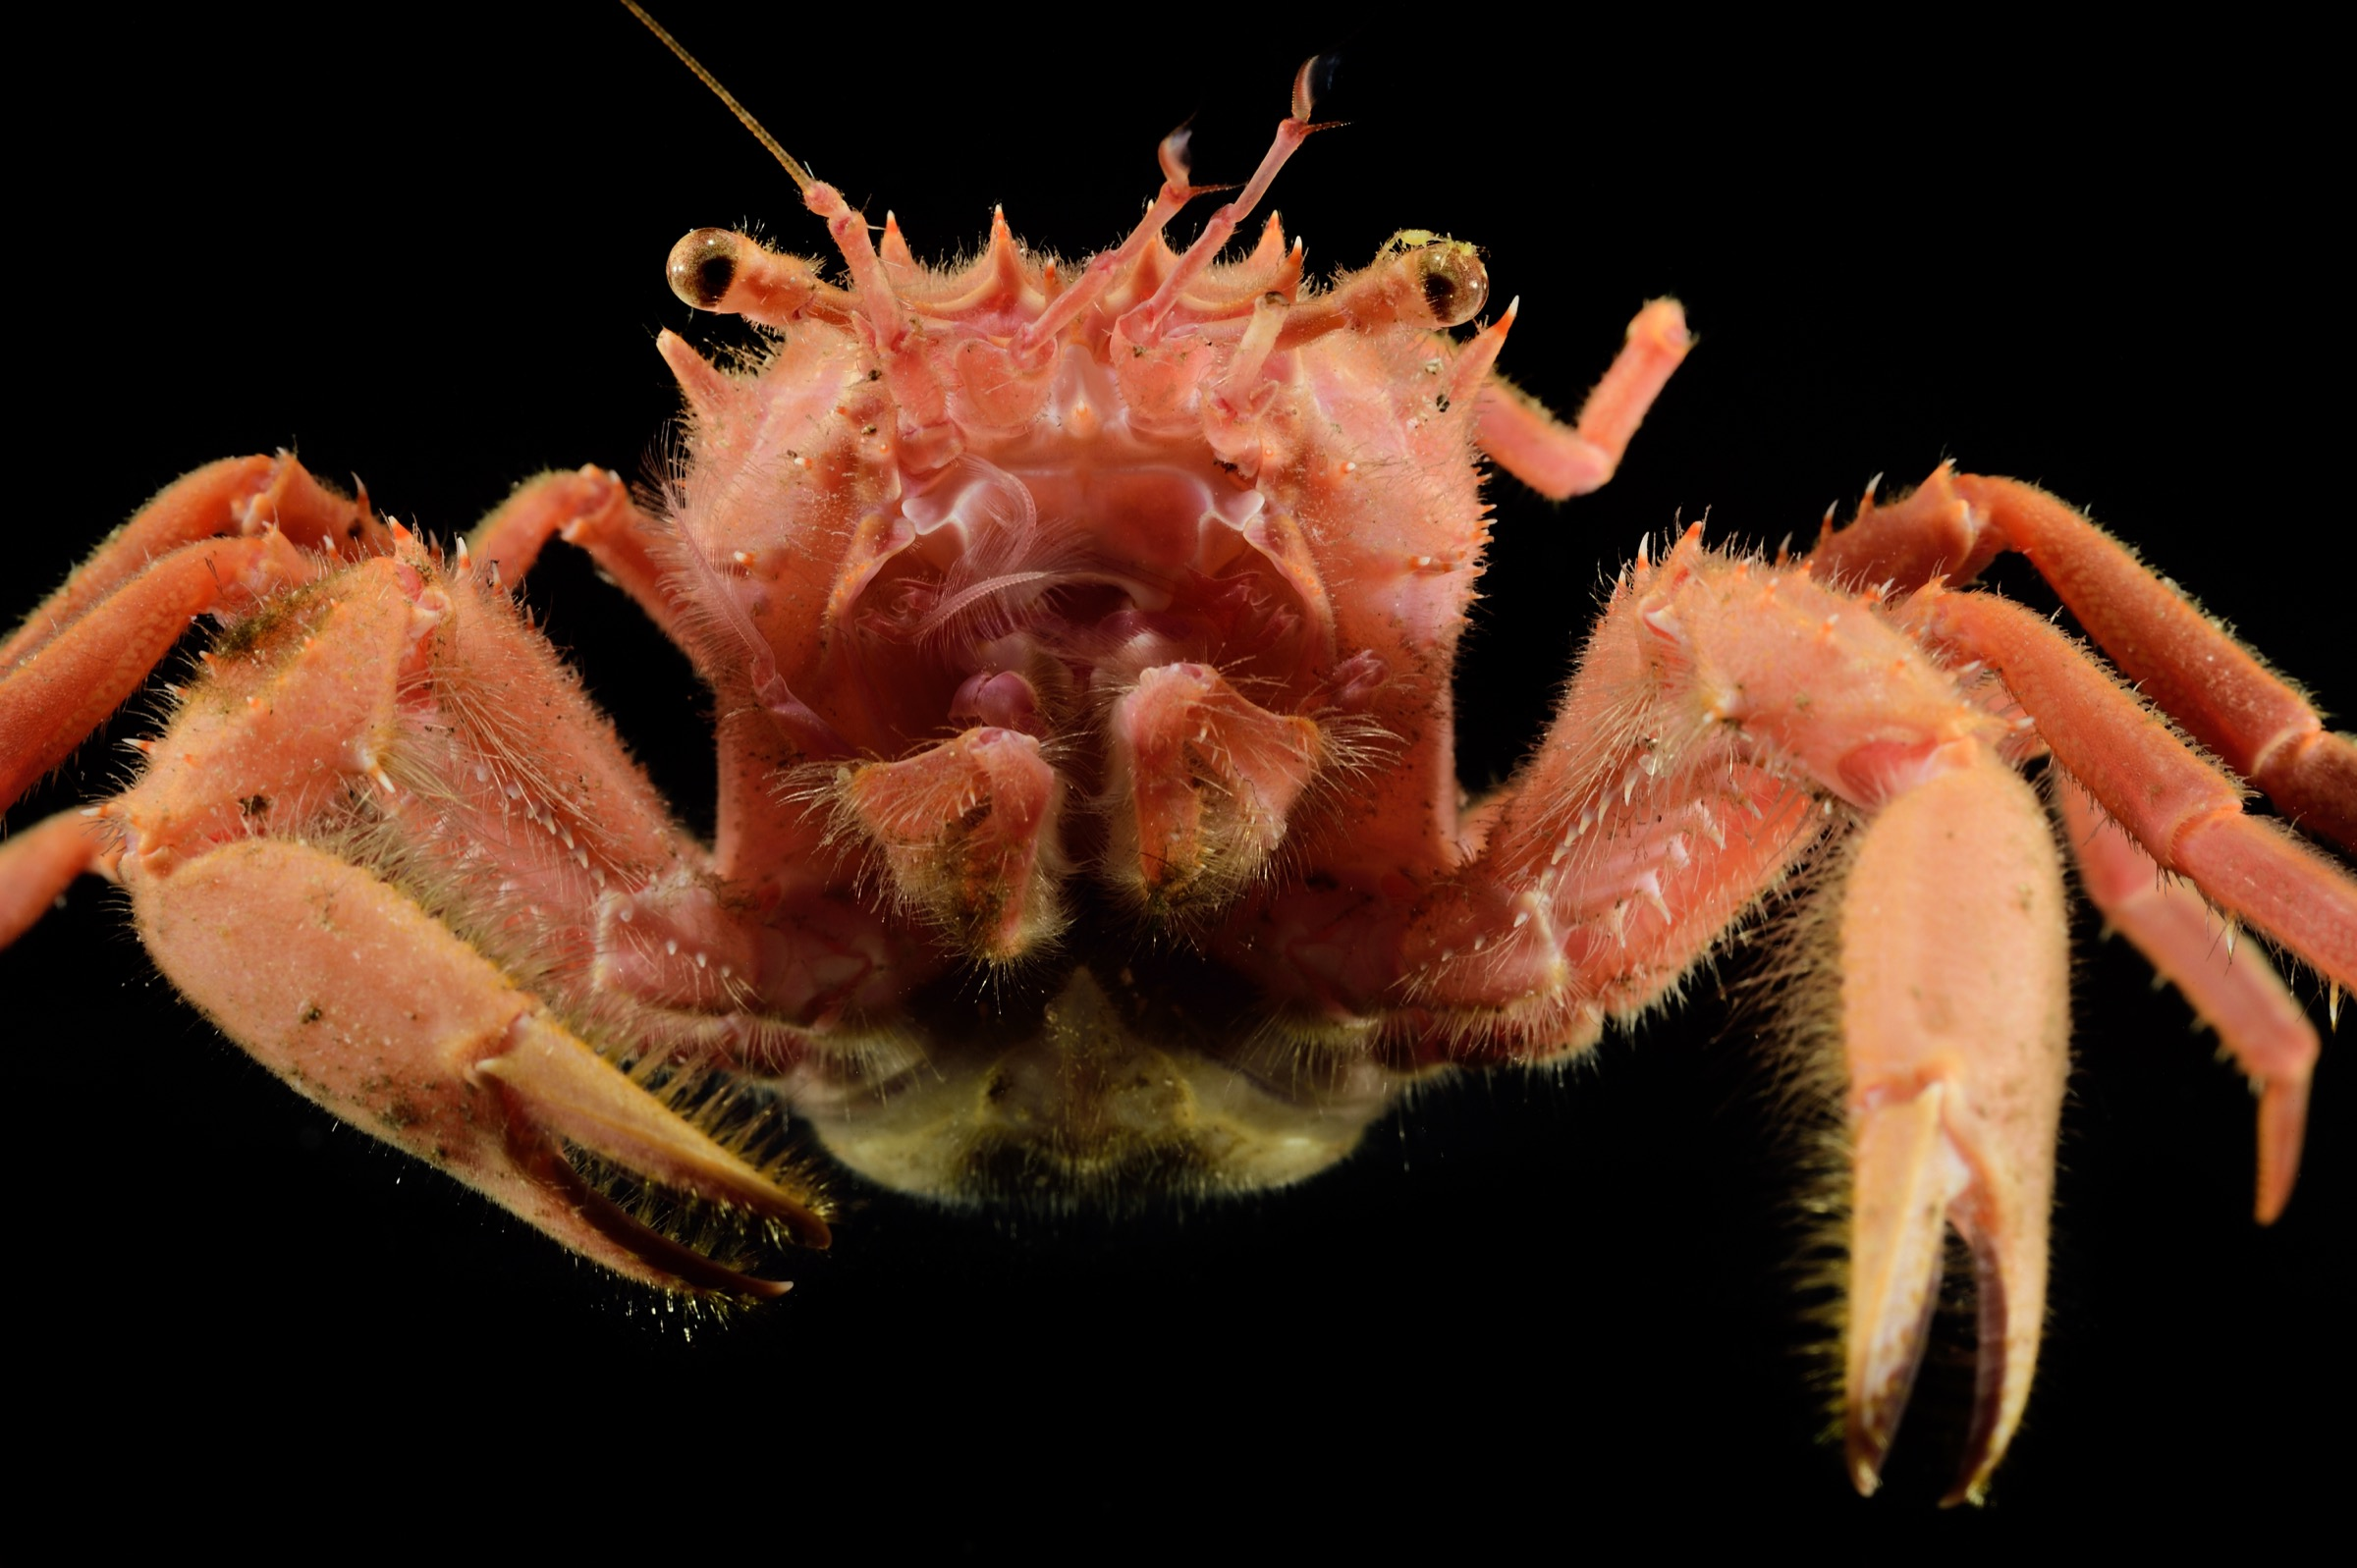 A deep-sea carrier crab (Homolidae sp.) collected by scientists along the steep slopes of Saint Peter and Saint Paul Archipelago. Photograph by Solvin Zankl